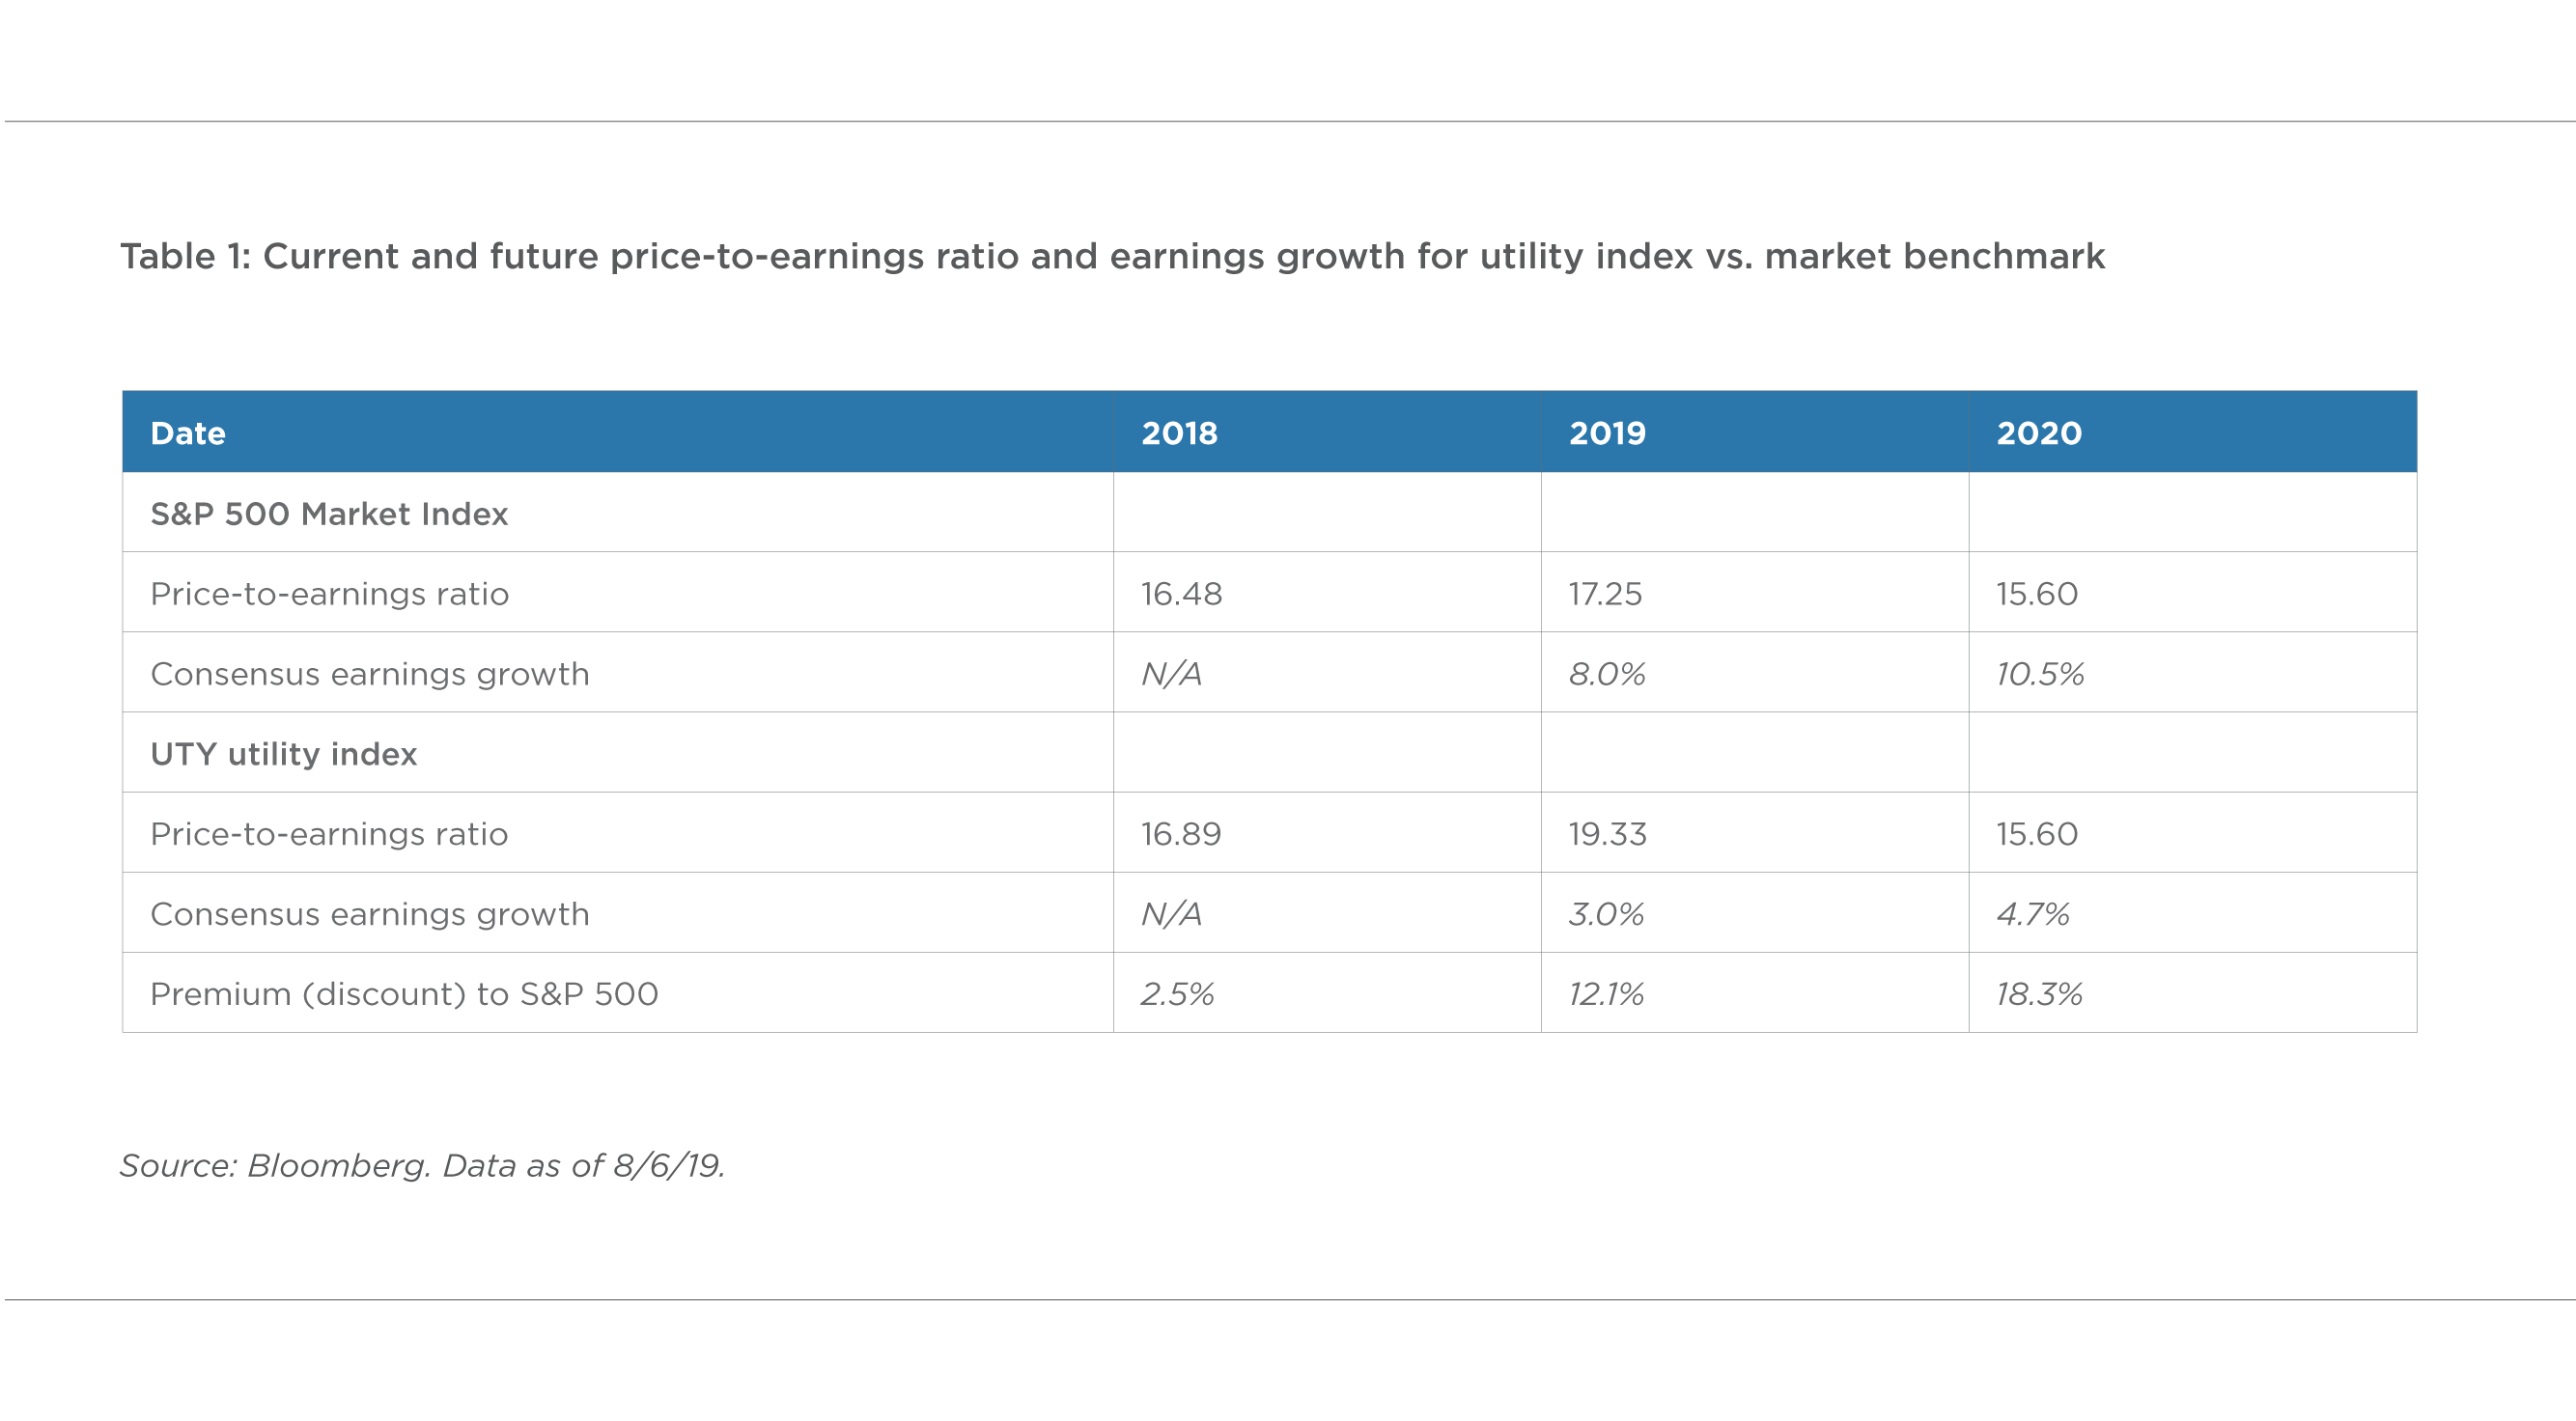 TABLE 1. CURRENT AND FUTURE PRICE-TO-EARNINGS RATIO AND EARNINGS GROWTH FOR UTILITY INDEX VERSUS MARKET BENCHMARK